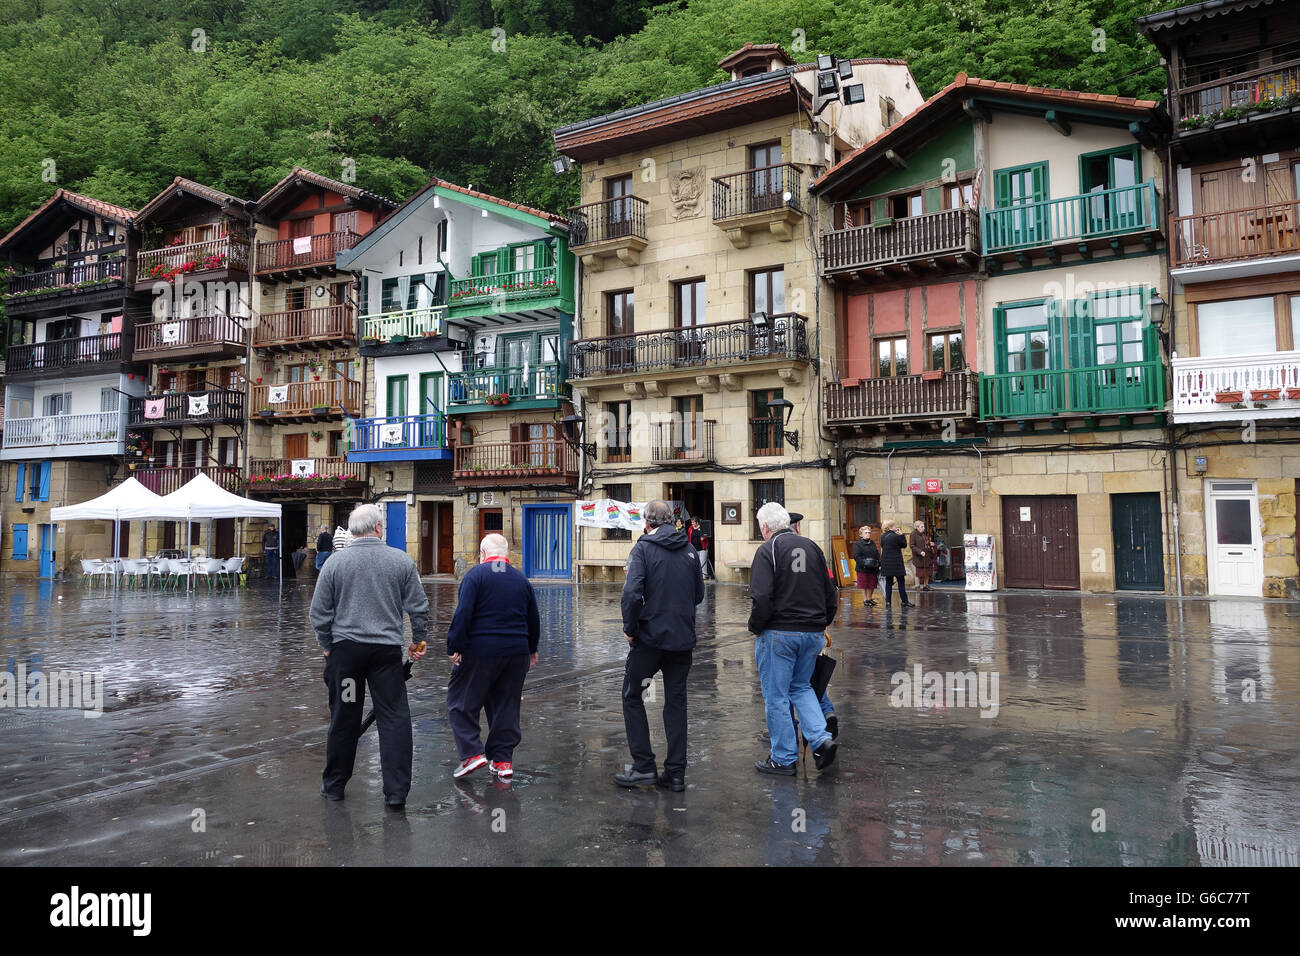 Pasaia or Pasajes located in the province of Gipuzkoa in the Basque Region of Spain - Stock Image